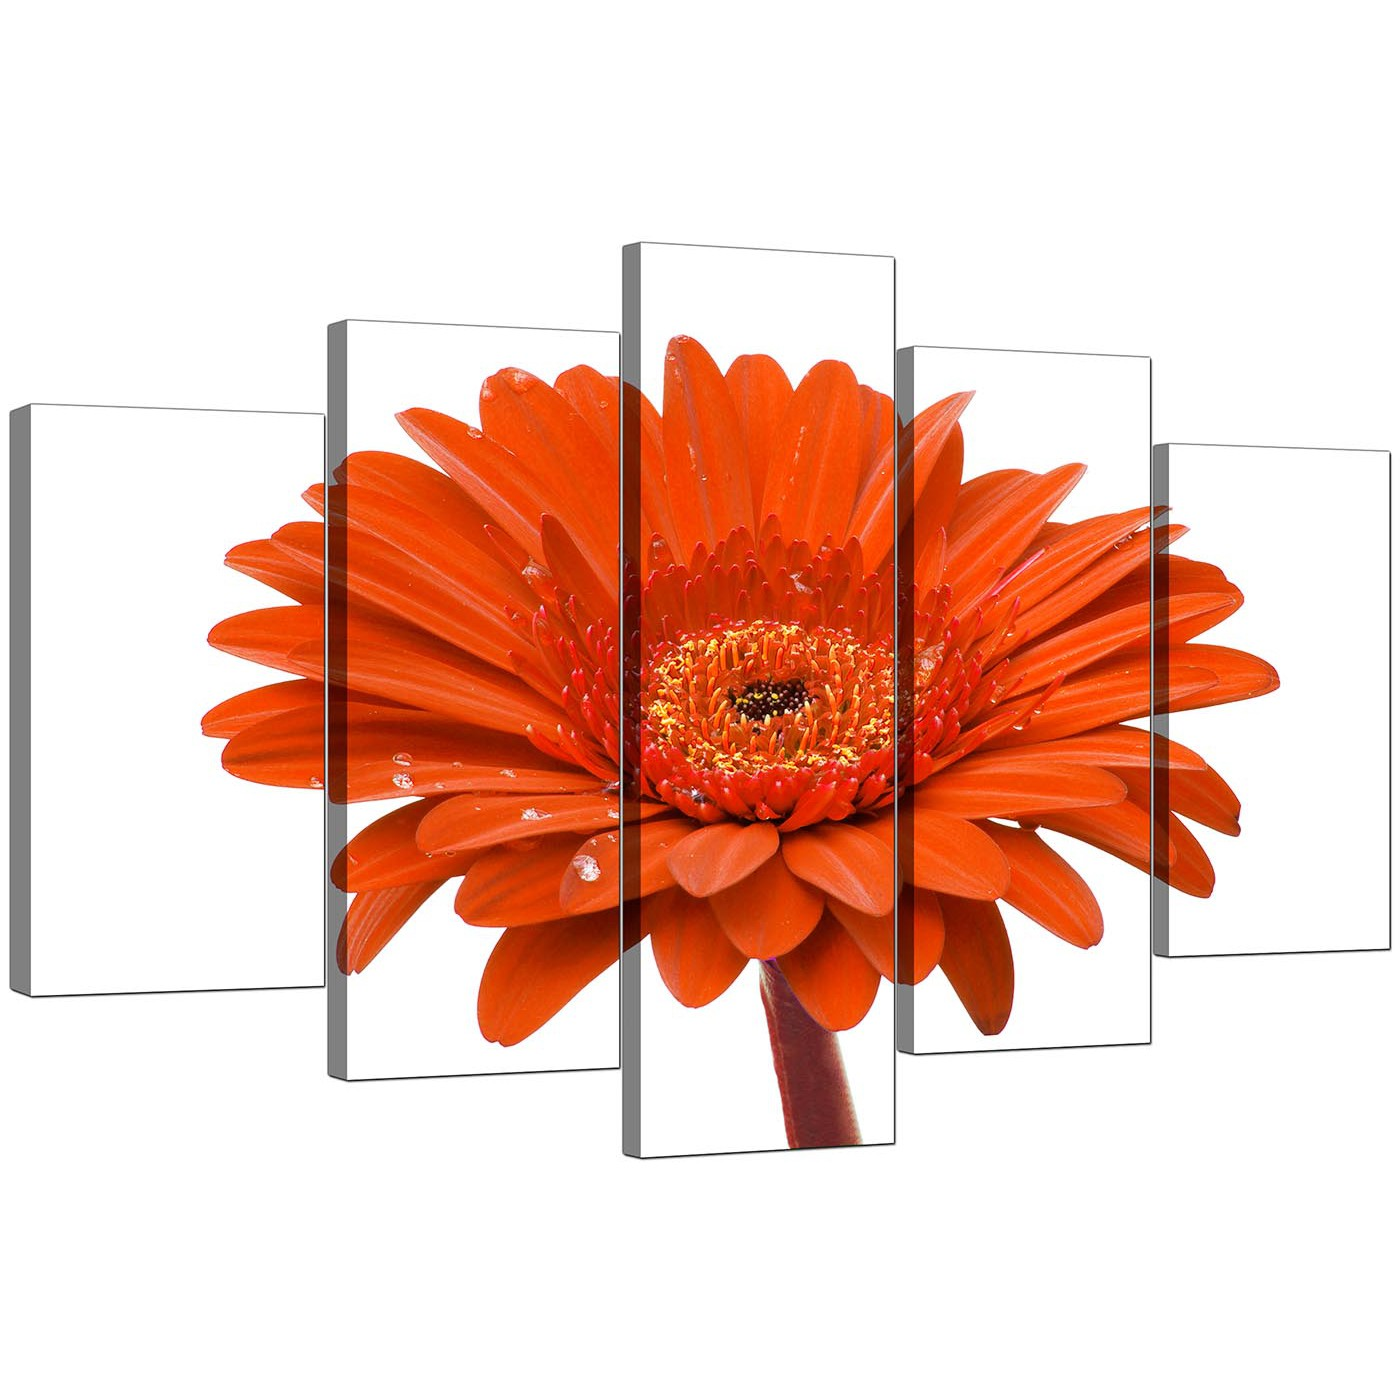 Extra Large Flower Canvas Prints 5 Part In Orange